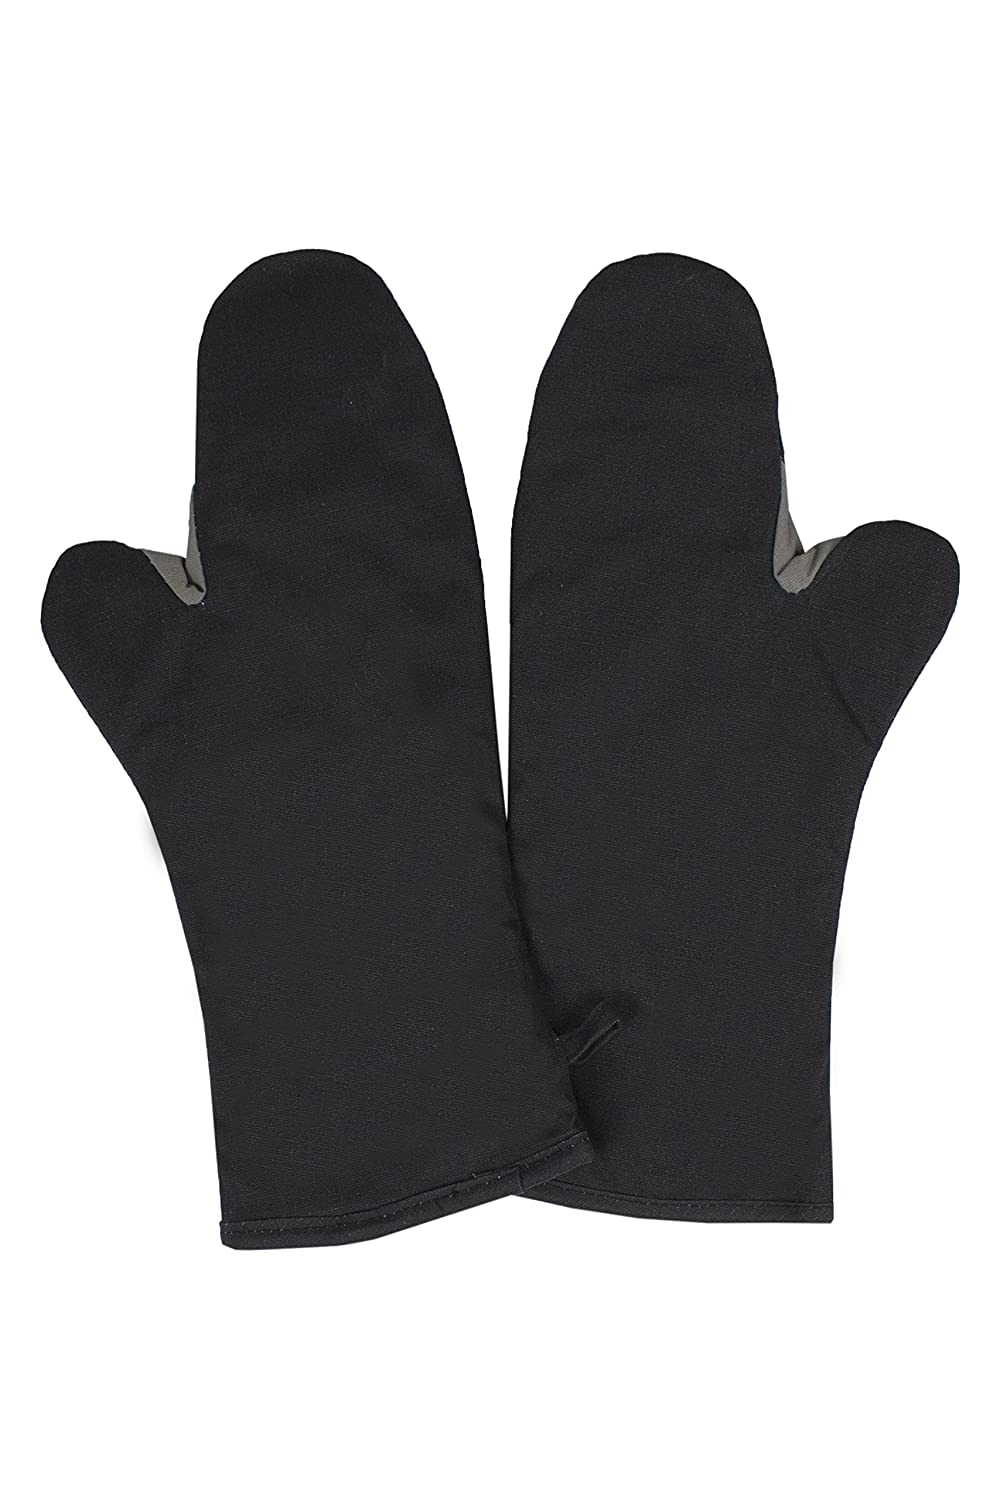 RITZ Food Service CL2PX27BETF-1Professional Grade Flame-Resistant 16-Inch Pyrotex Oven Mitt, Set of 2, Black